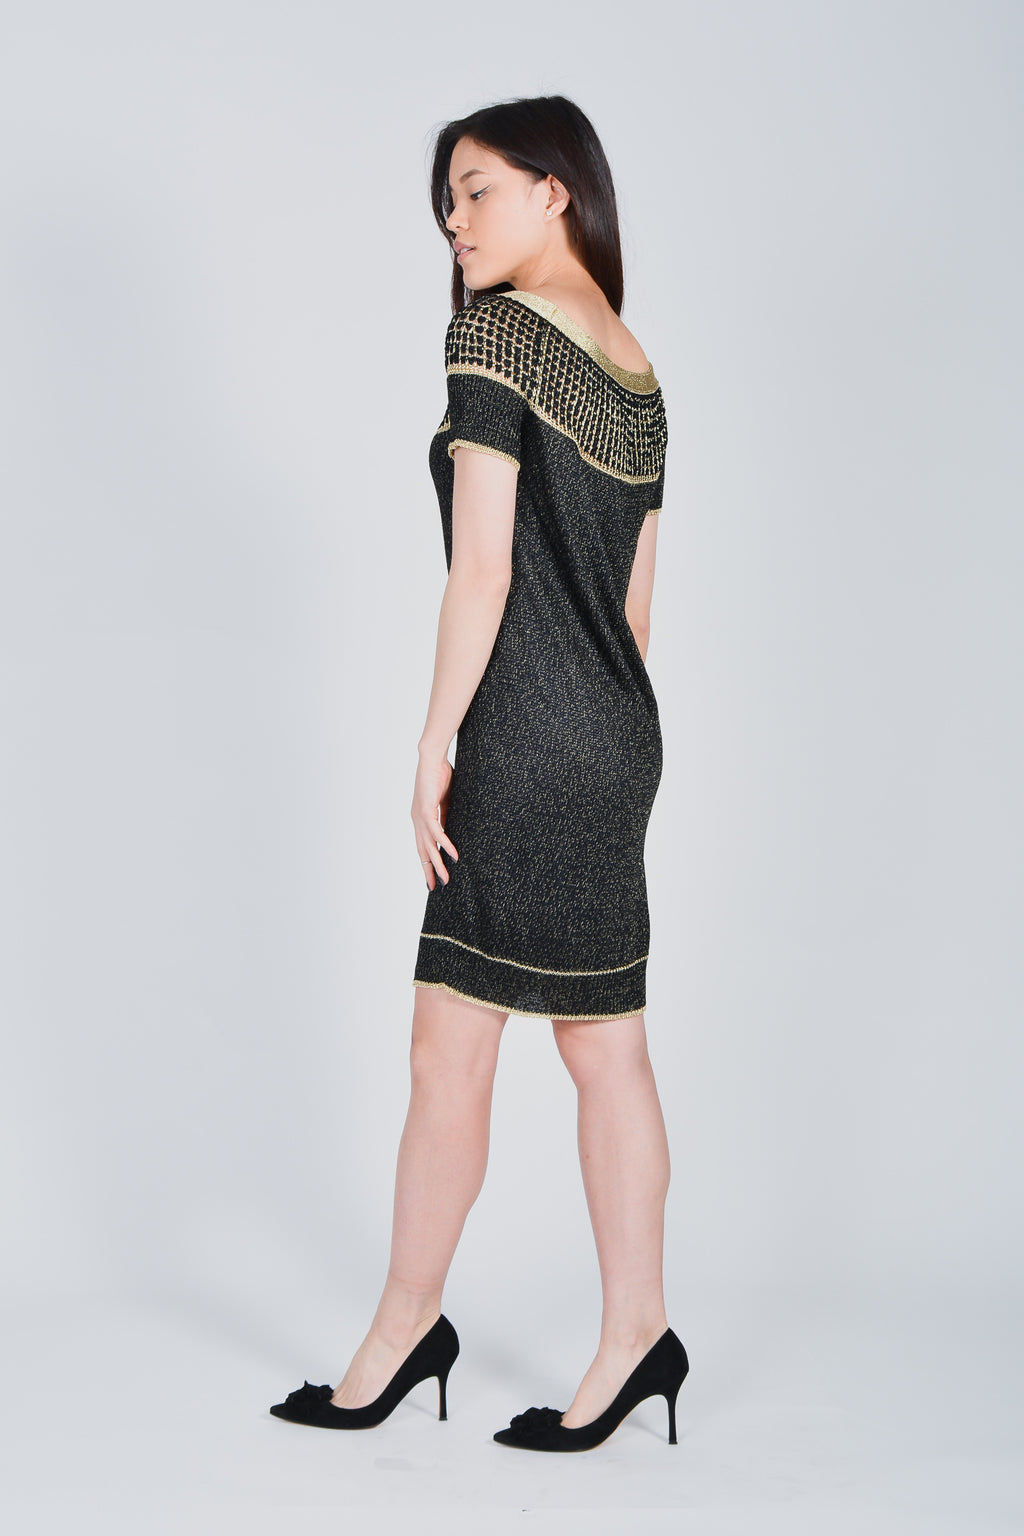 09ccb0aa2 Gucci Black/Gold Knitted Short Sleeve Dress – Mine & Yours ...